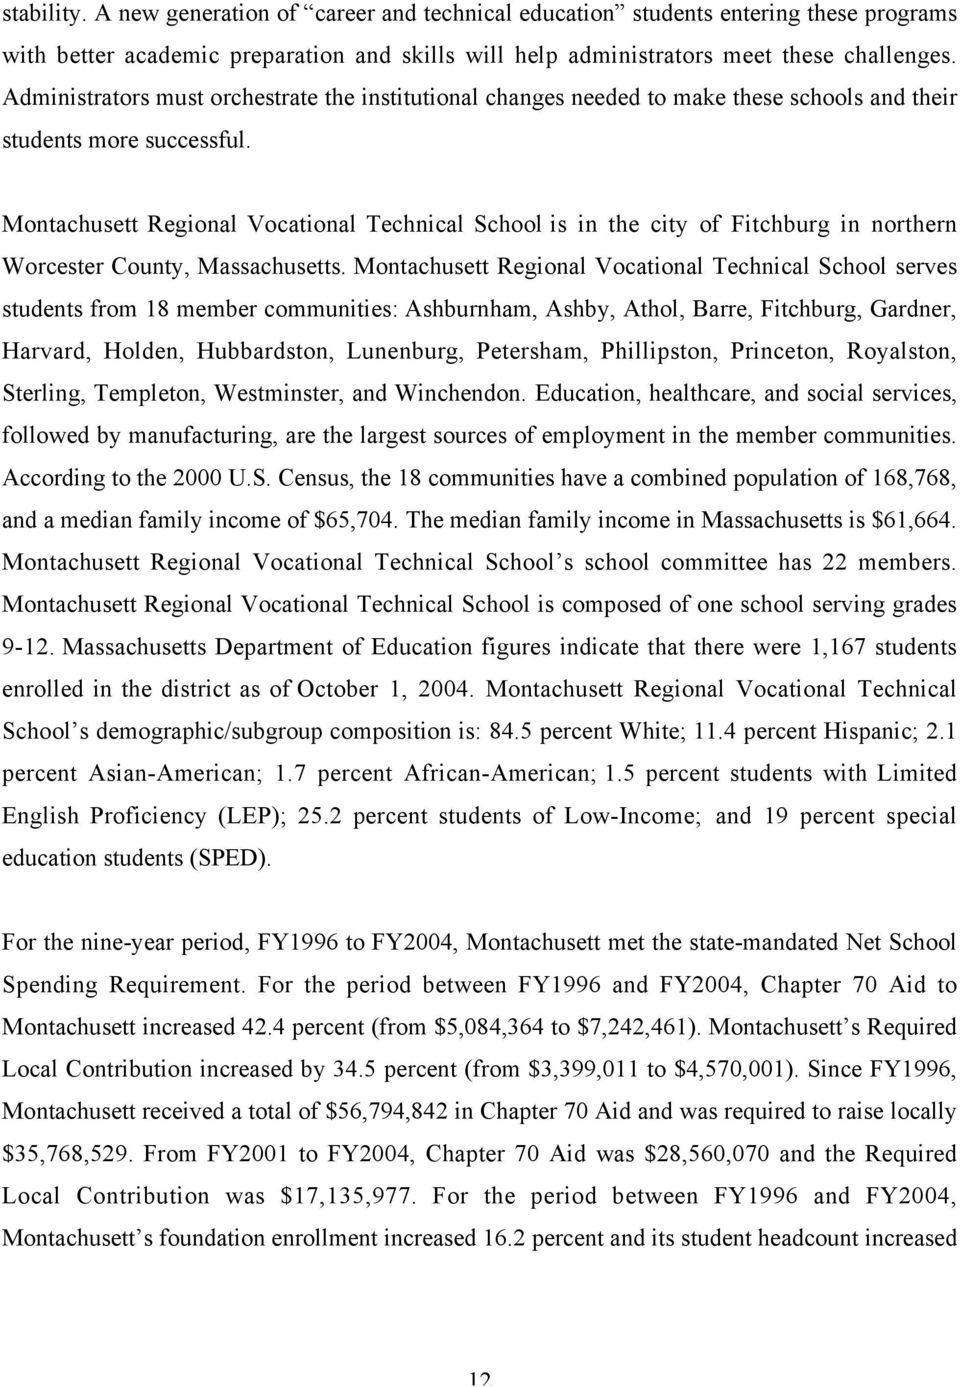 Montachusett Regional Vocational Technical School is in the city of Fitchburg in northern Worcester County, Massachusetts.